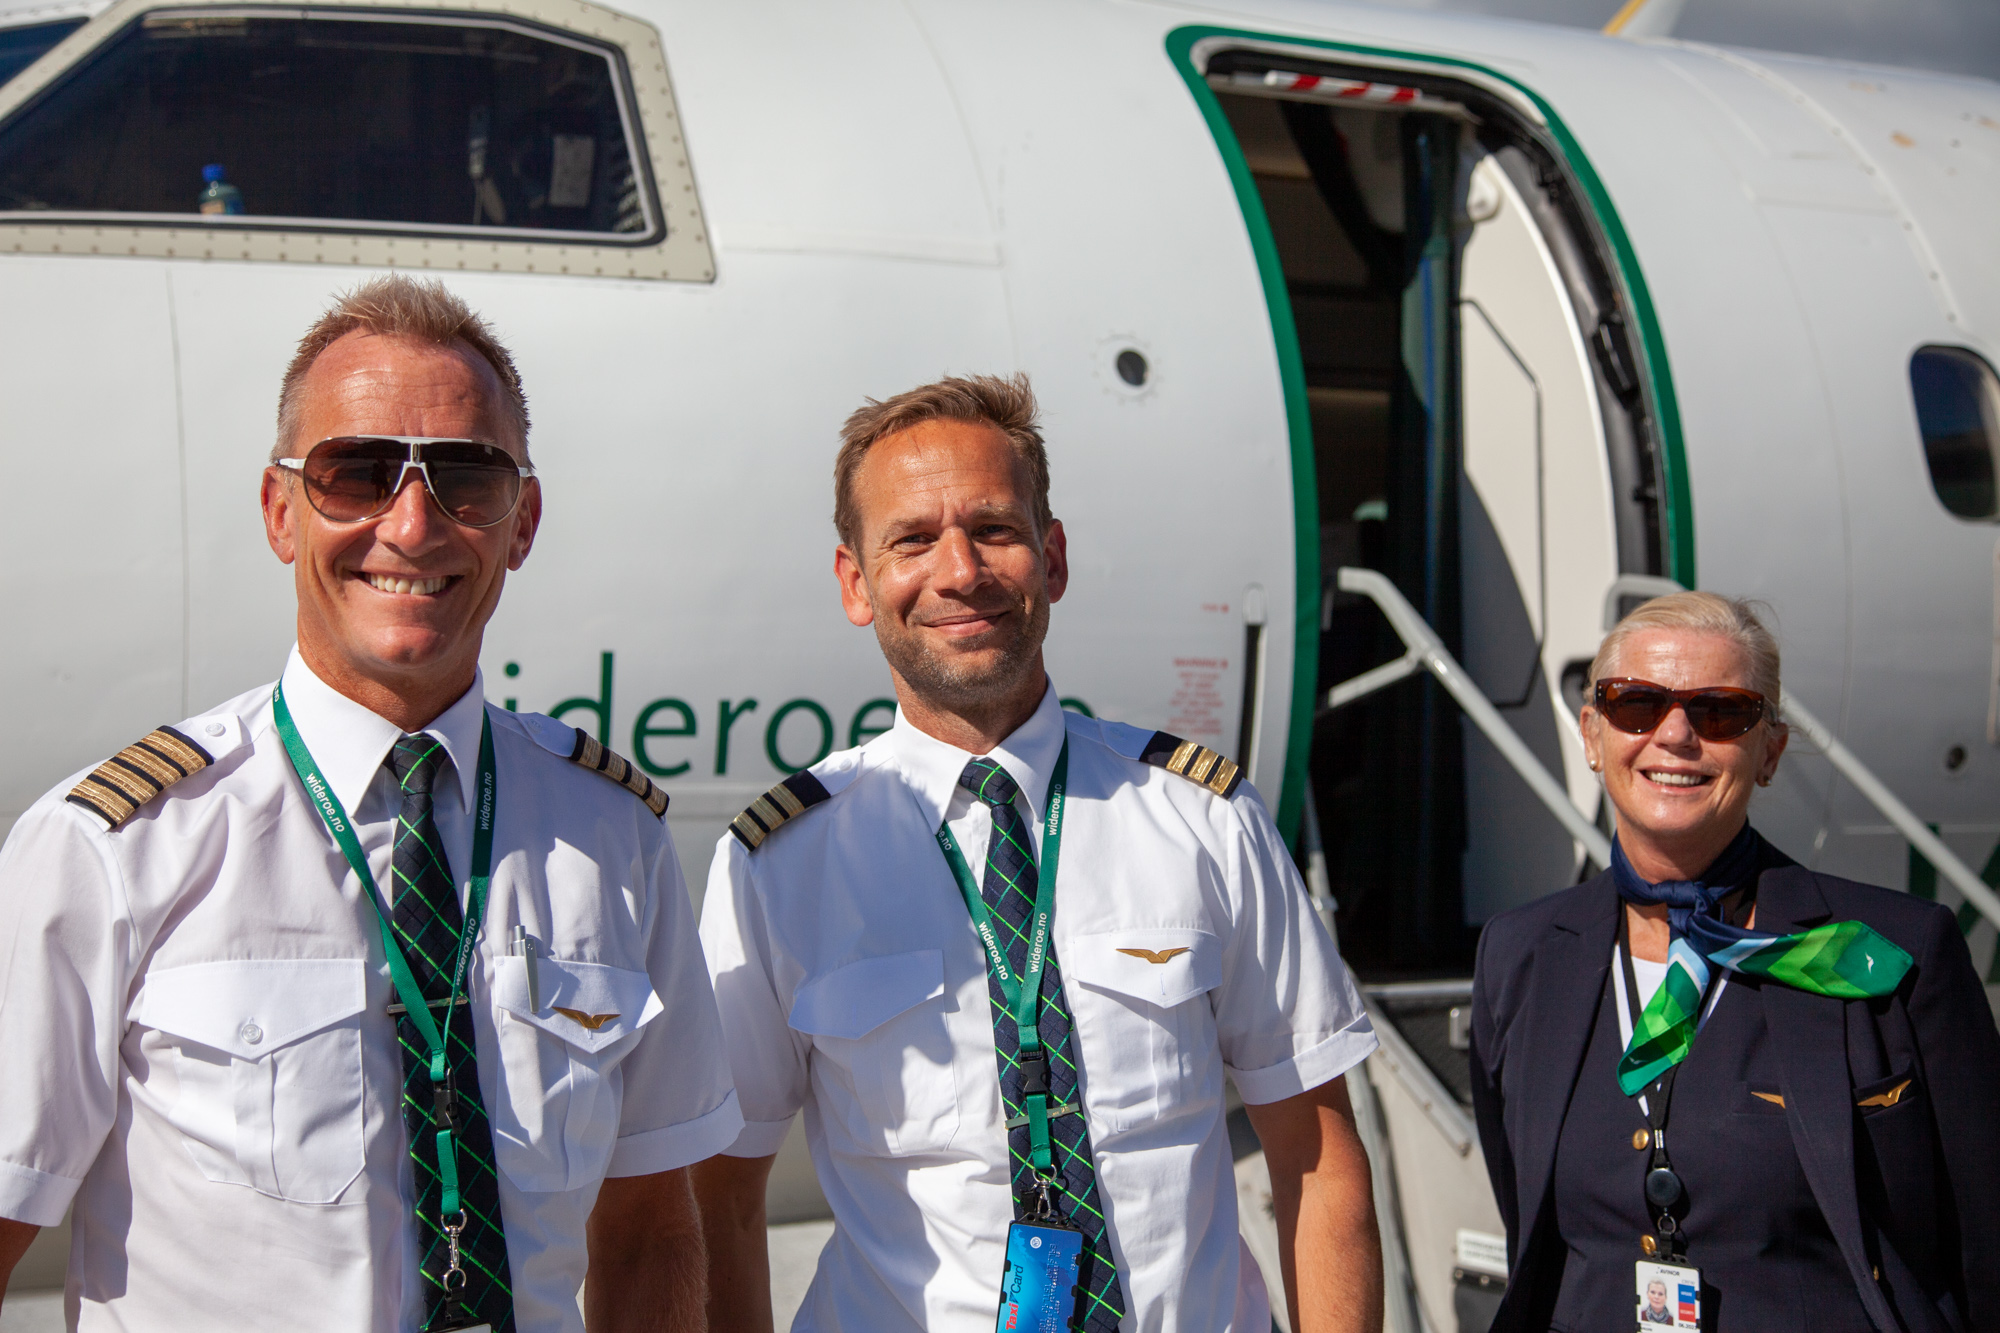 Crew from Widerøe flight Sandane